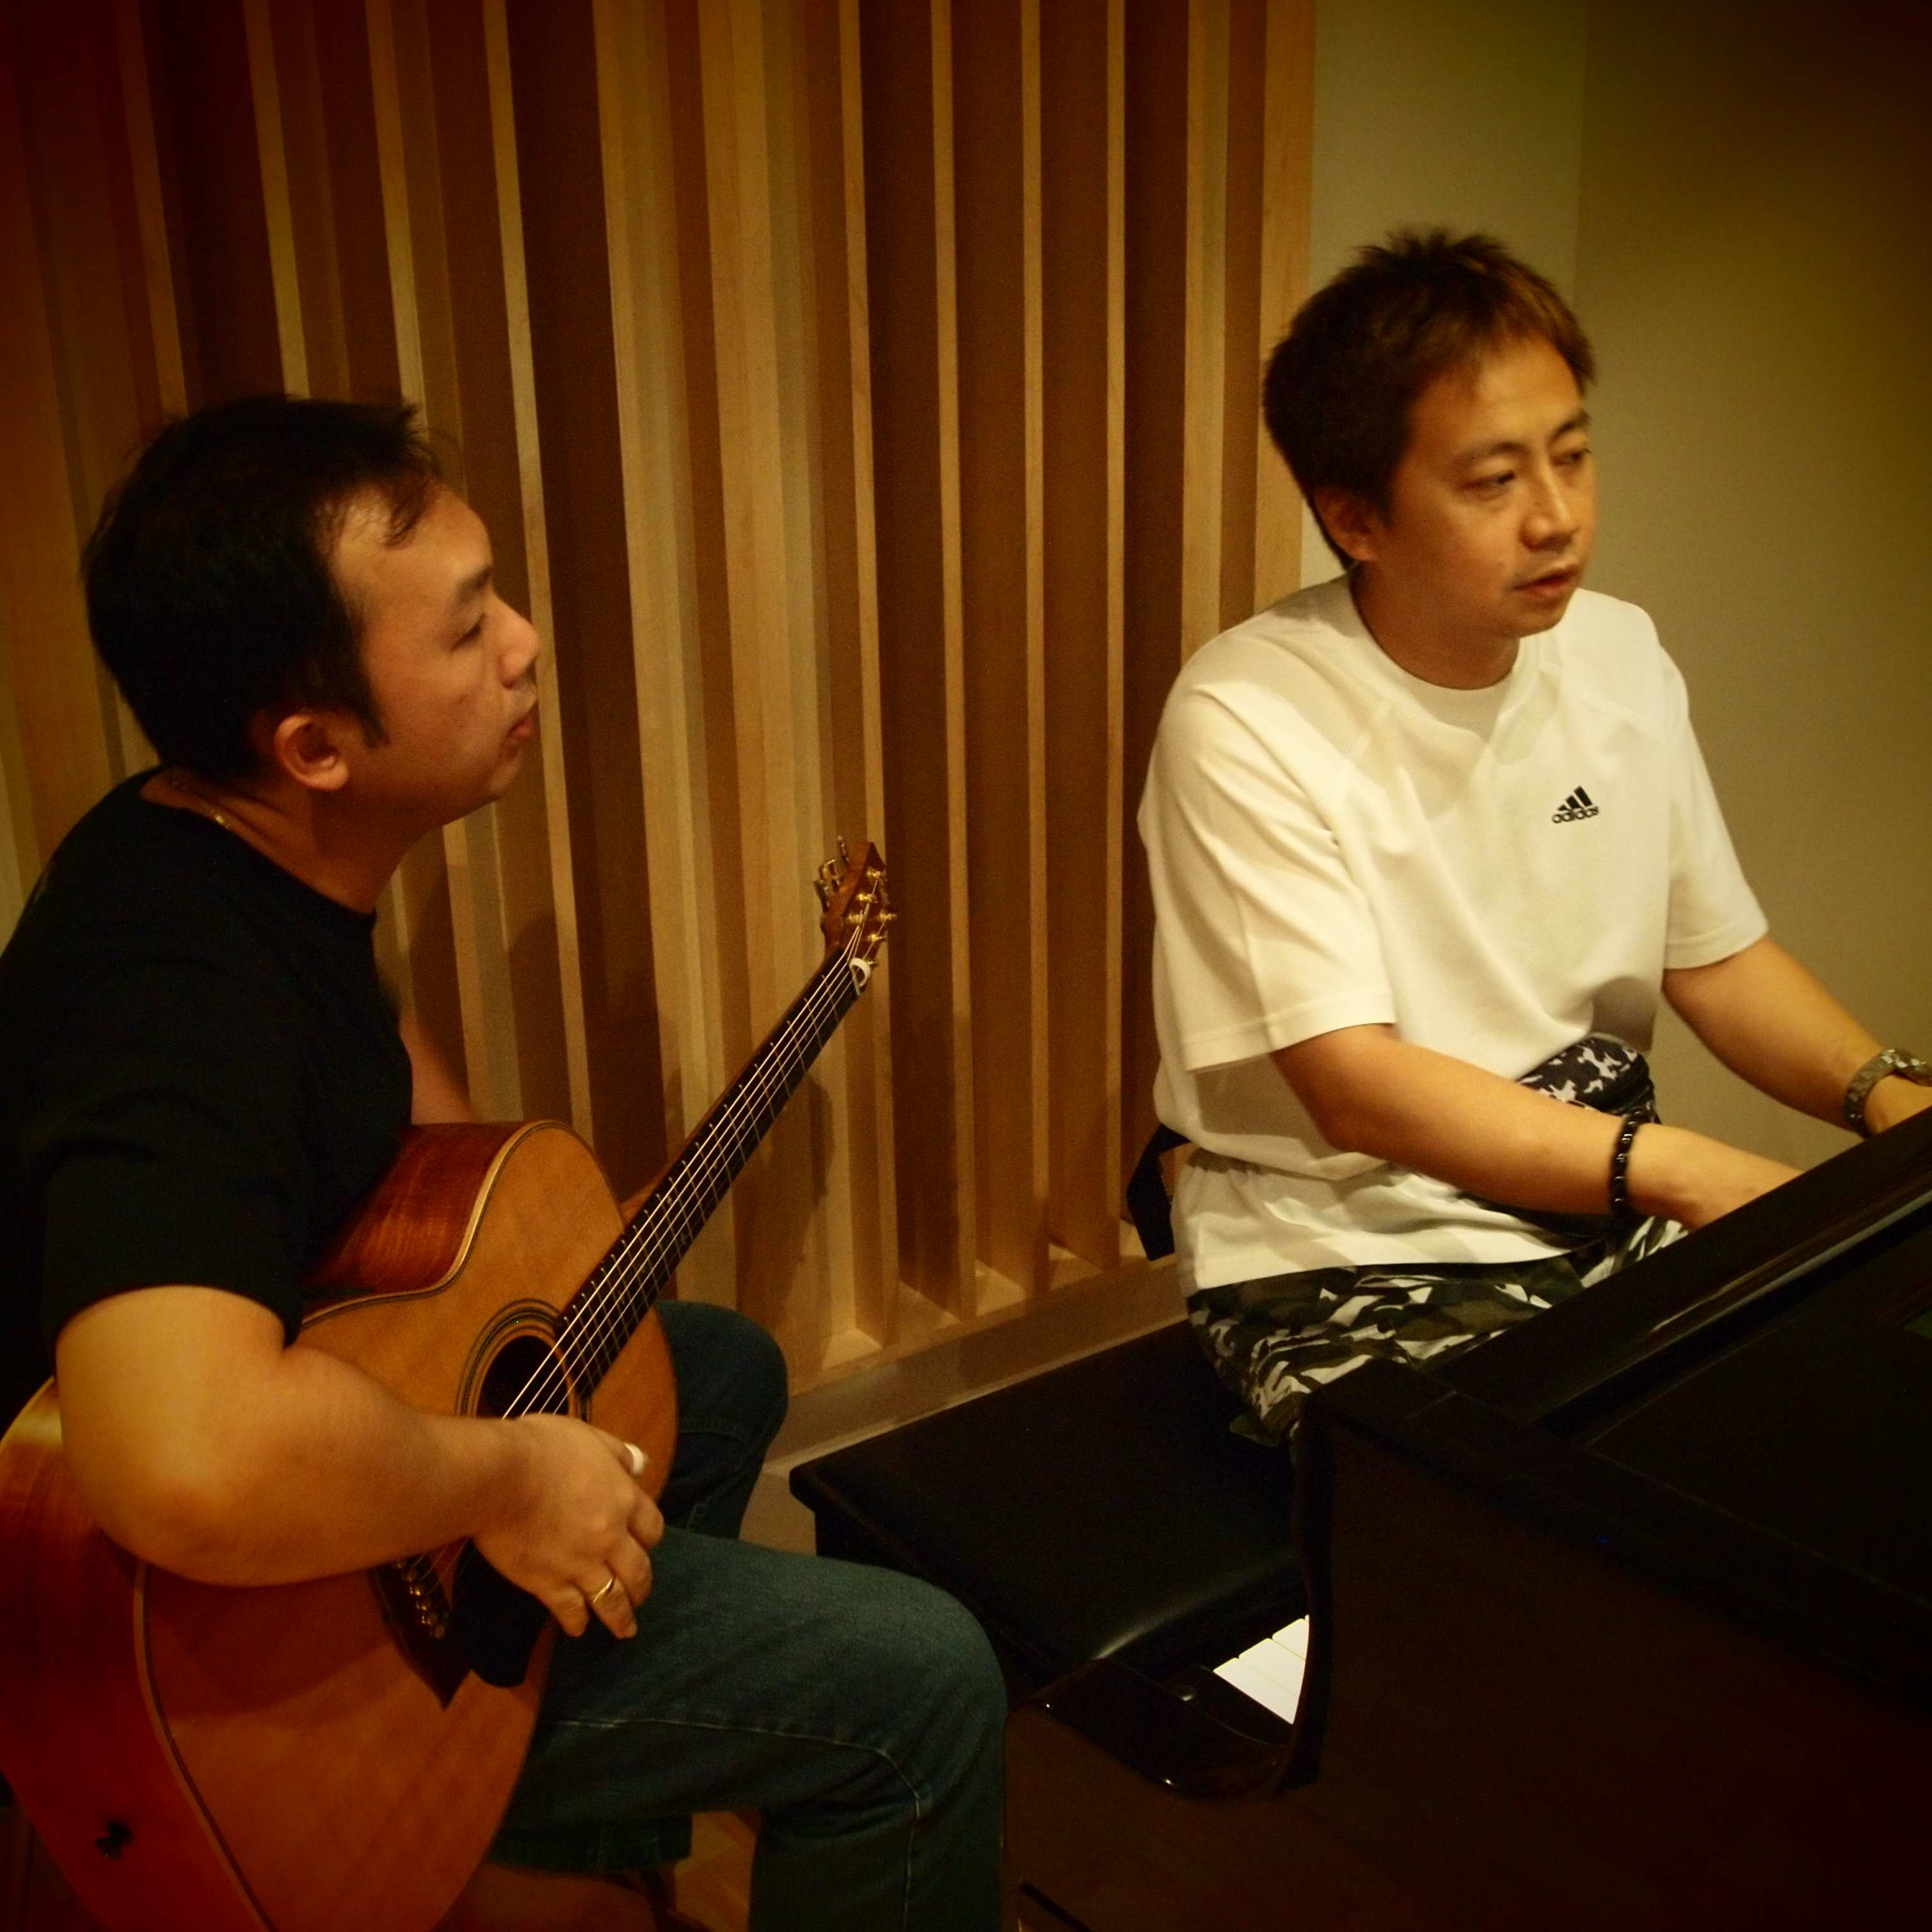 Roger Wang (left) and producer Andrew Tuason (right).